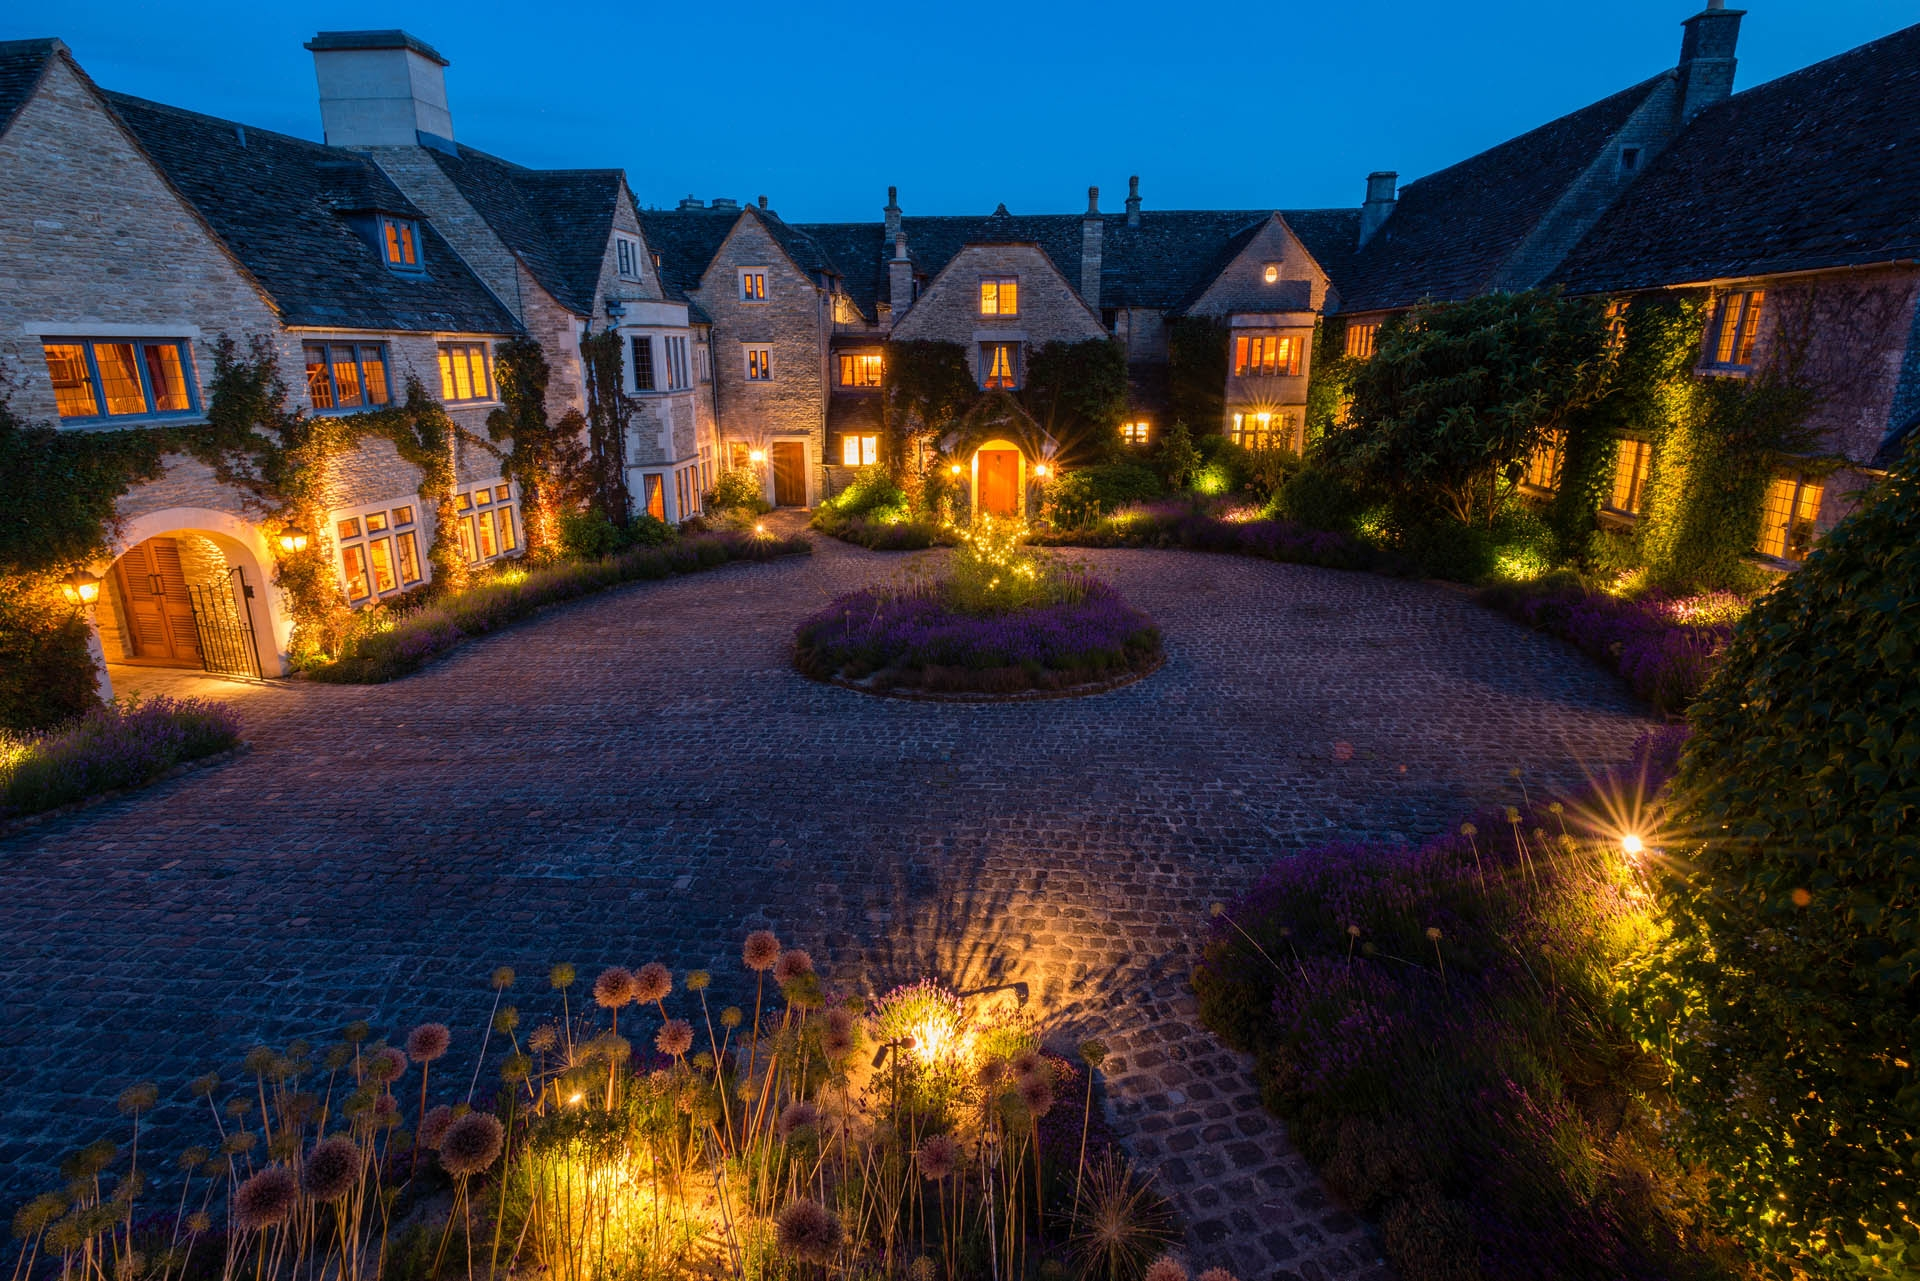 courtyard at Whatley Manor